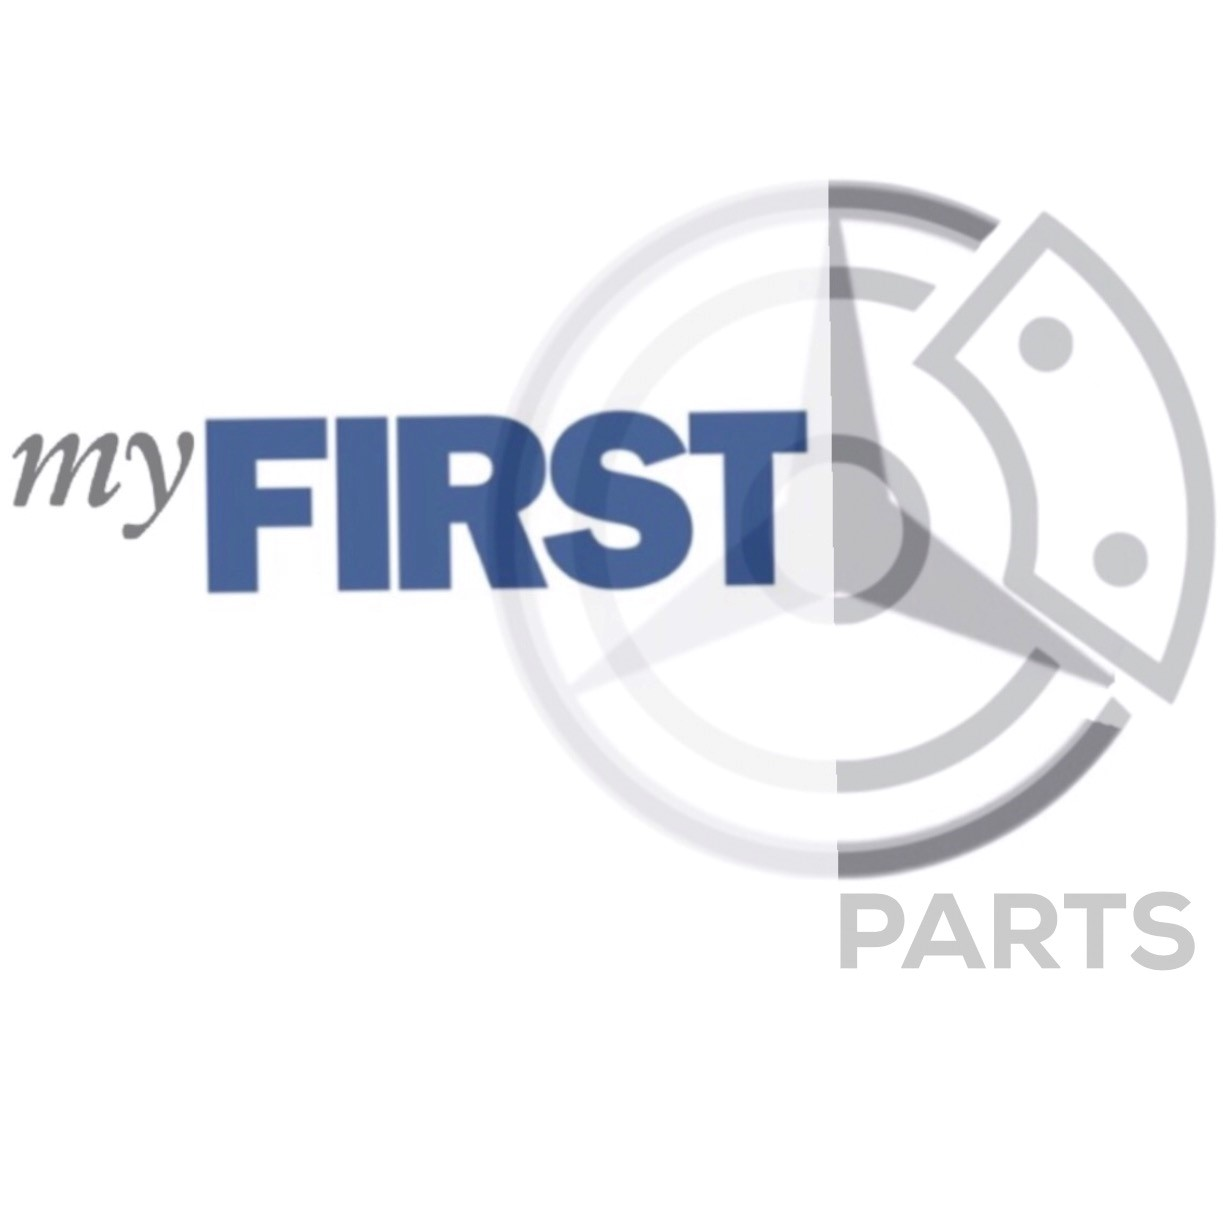 logo firststar